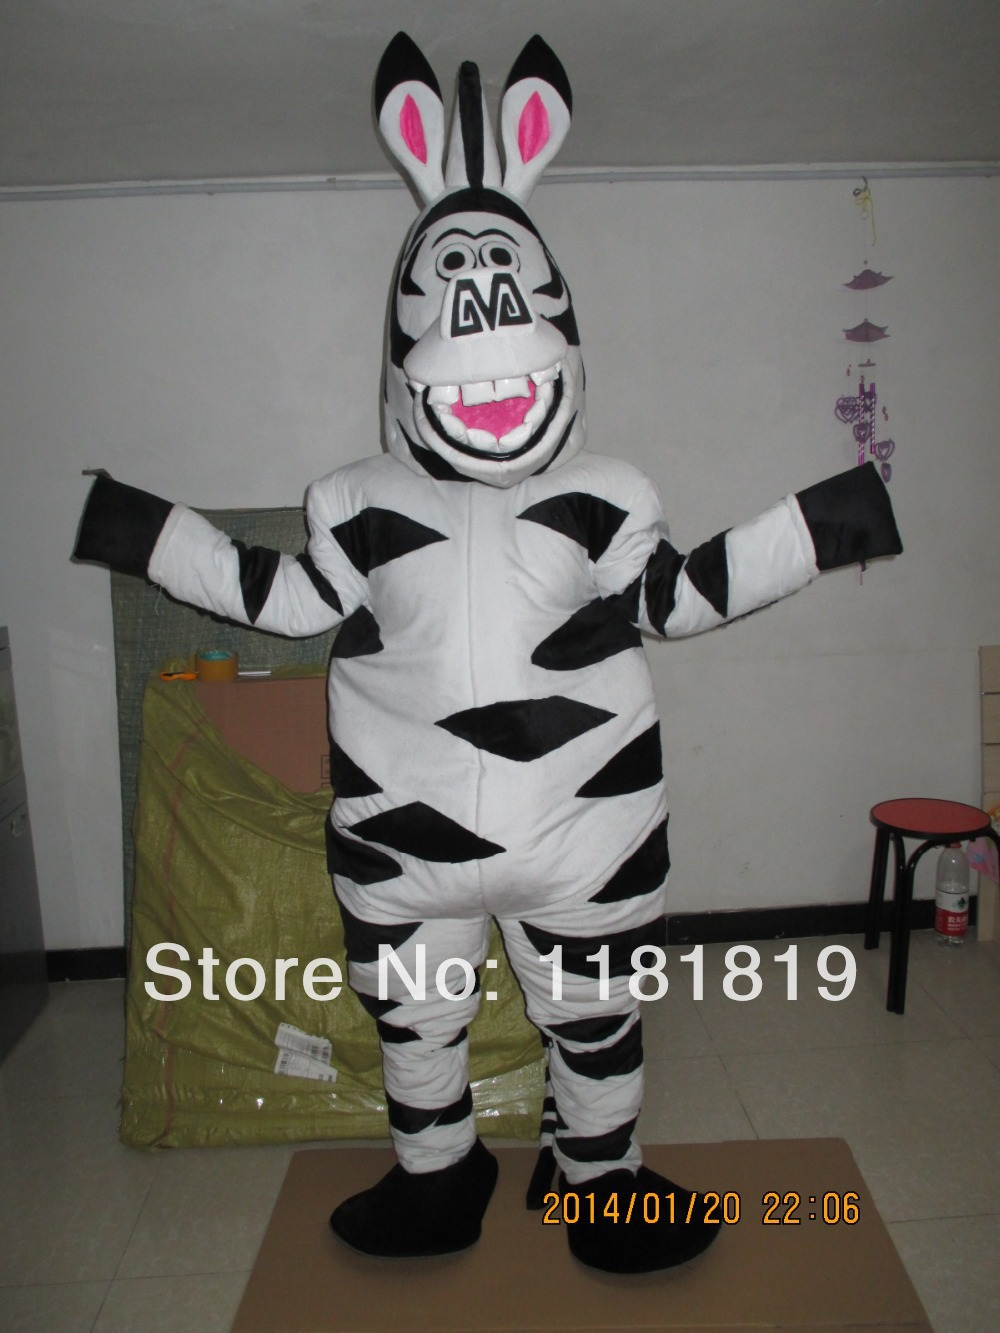 MASCOT zebra mascot costume custom fancy costume anime cosplay kit mascotte fancy dress carnival costume-in Mascot from Novelty u0026 Special Use on ... & MASCOT zebra mascot costume custom fancy costume anime cosplay kit ...